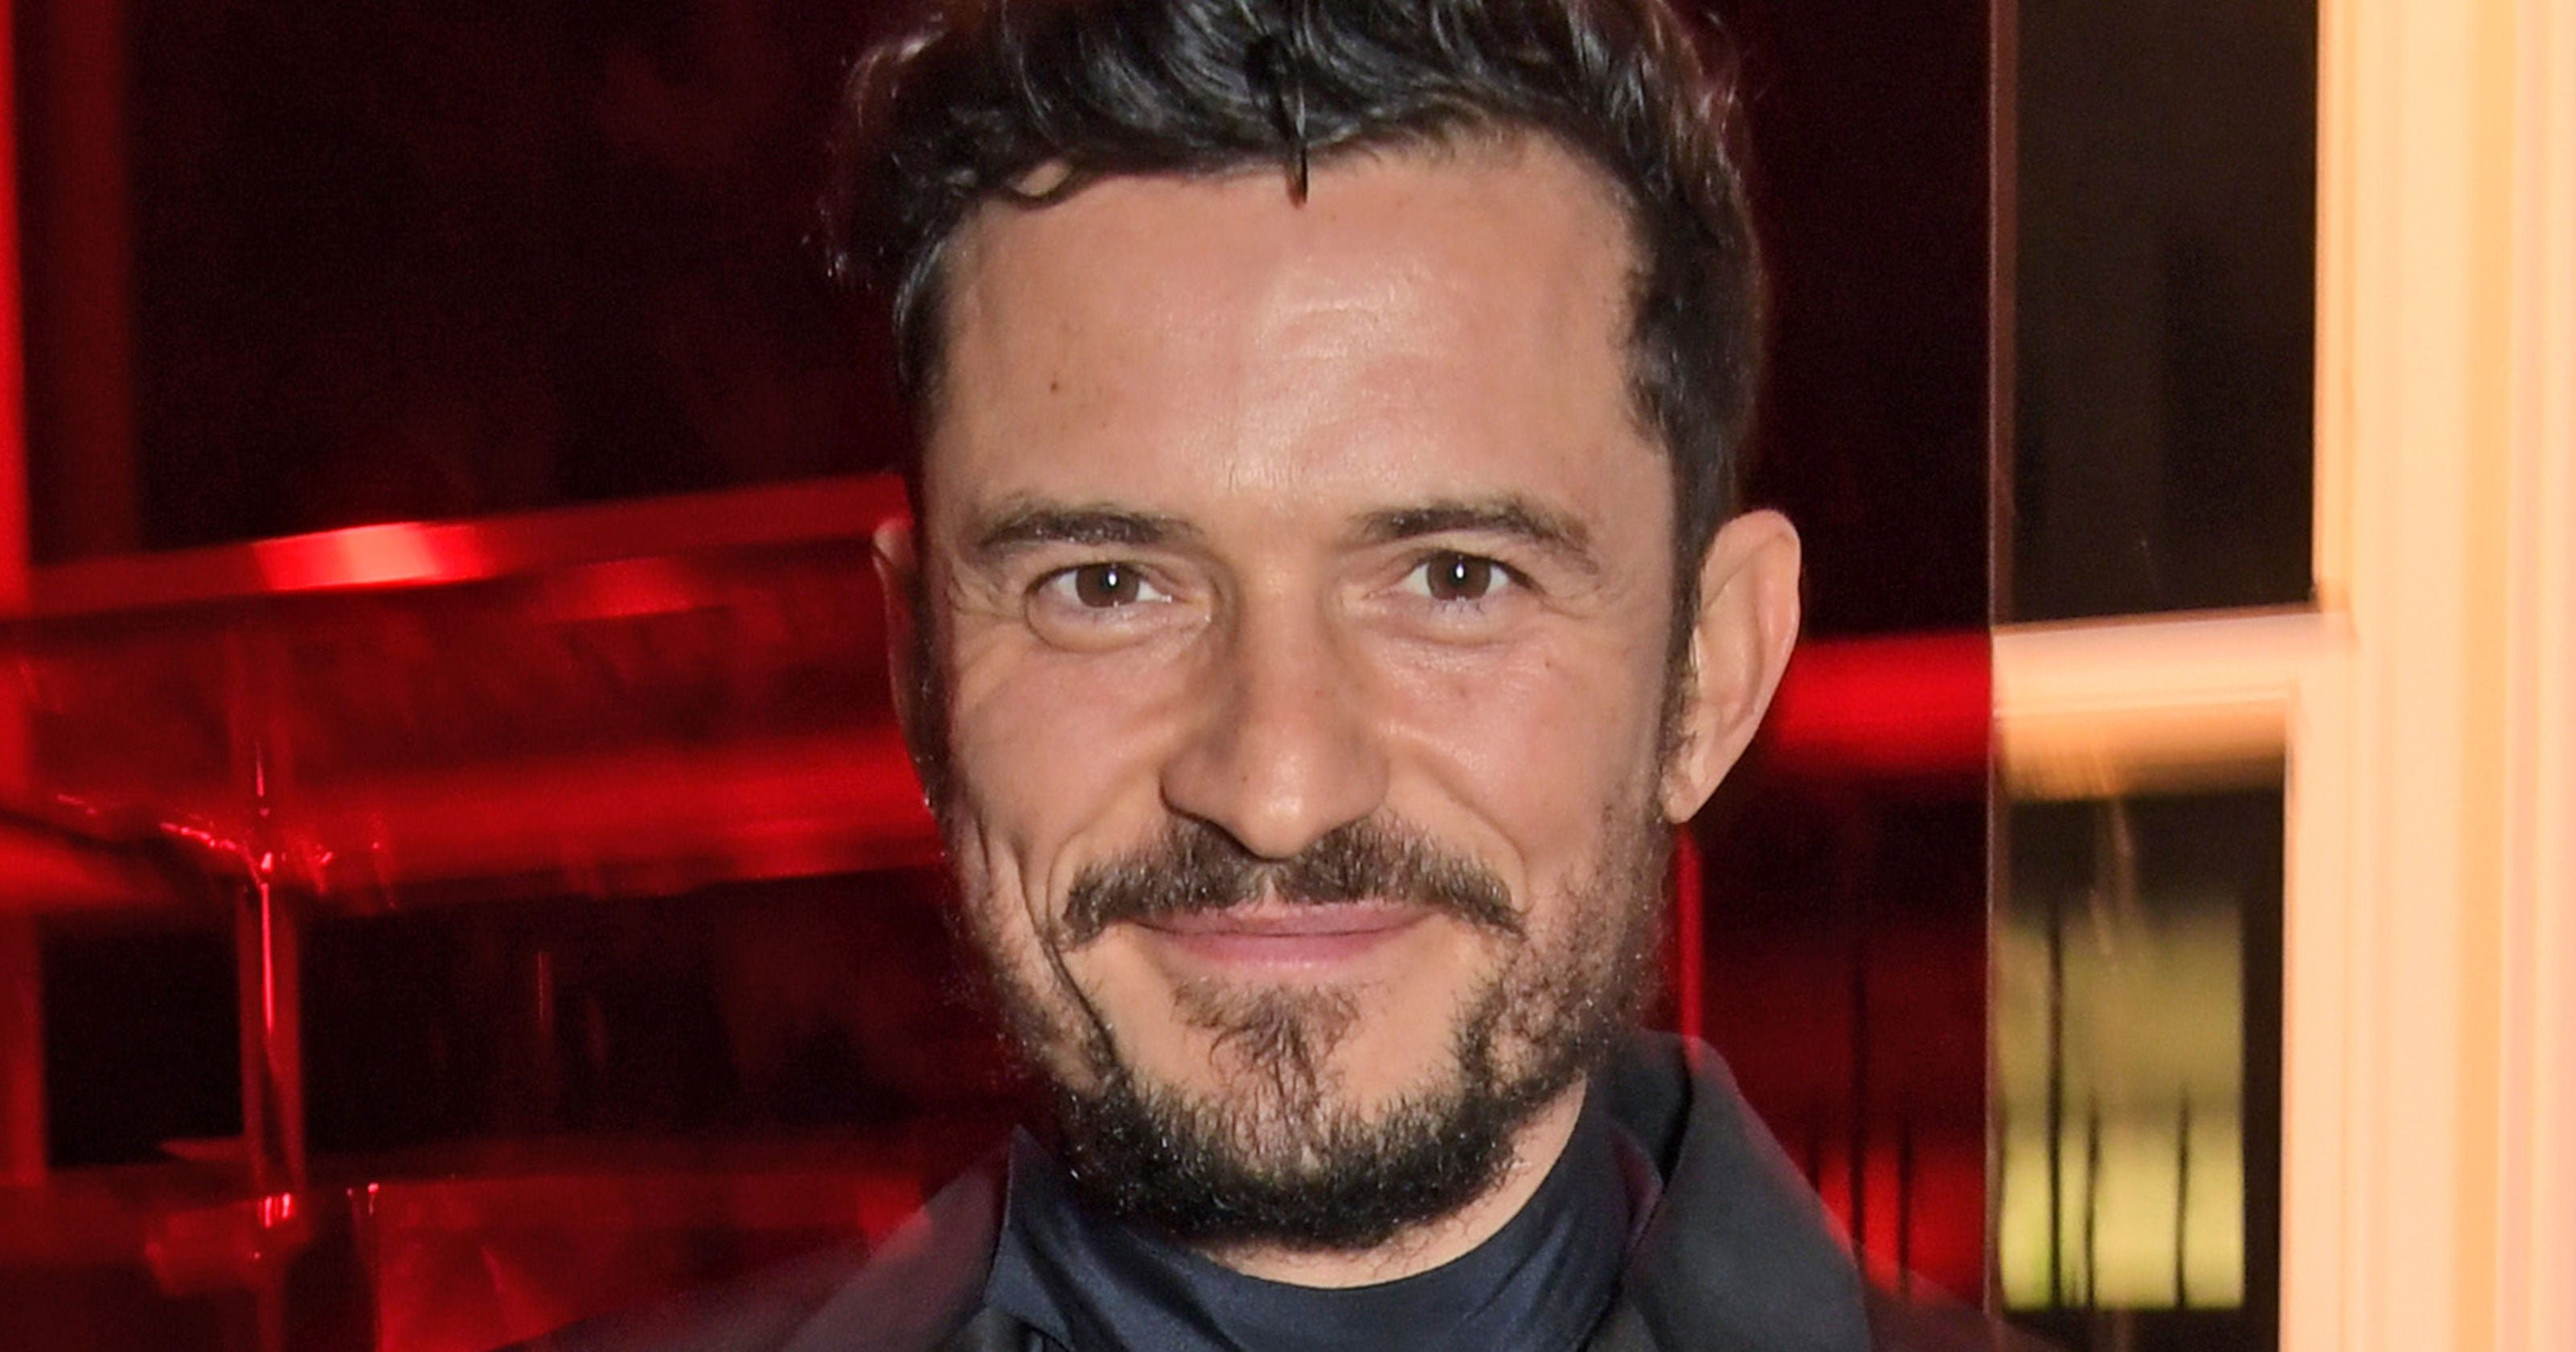 Orlando Bloom Got A Sweet Tattoo Tribute To His Son — With One Small Issue